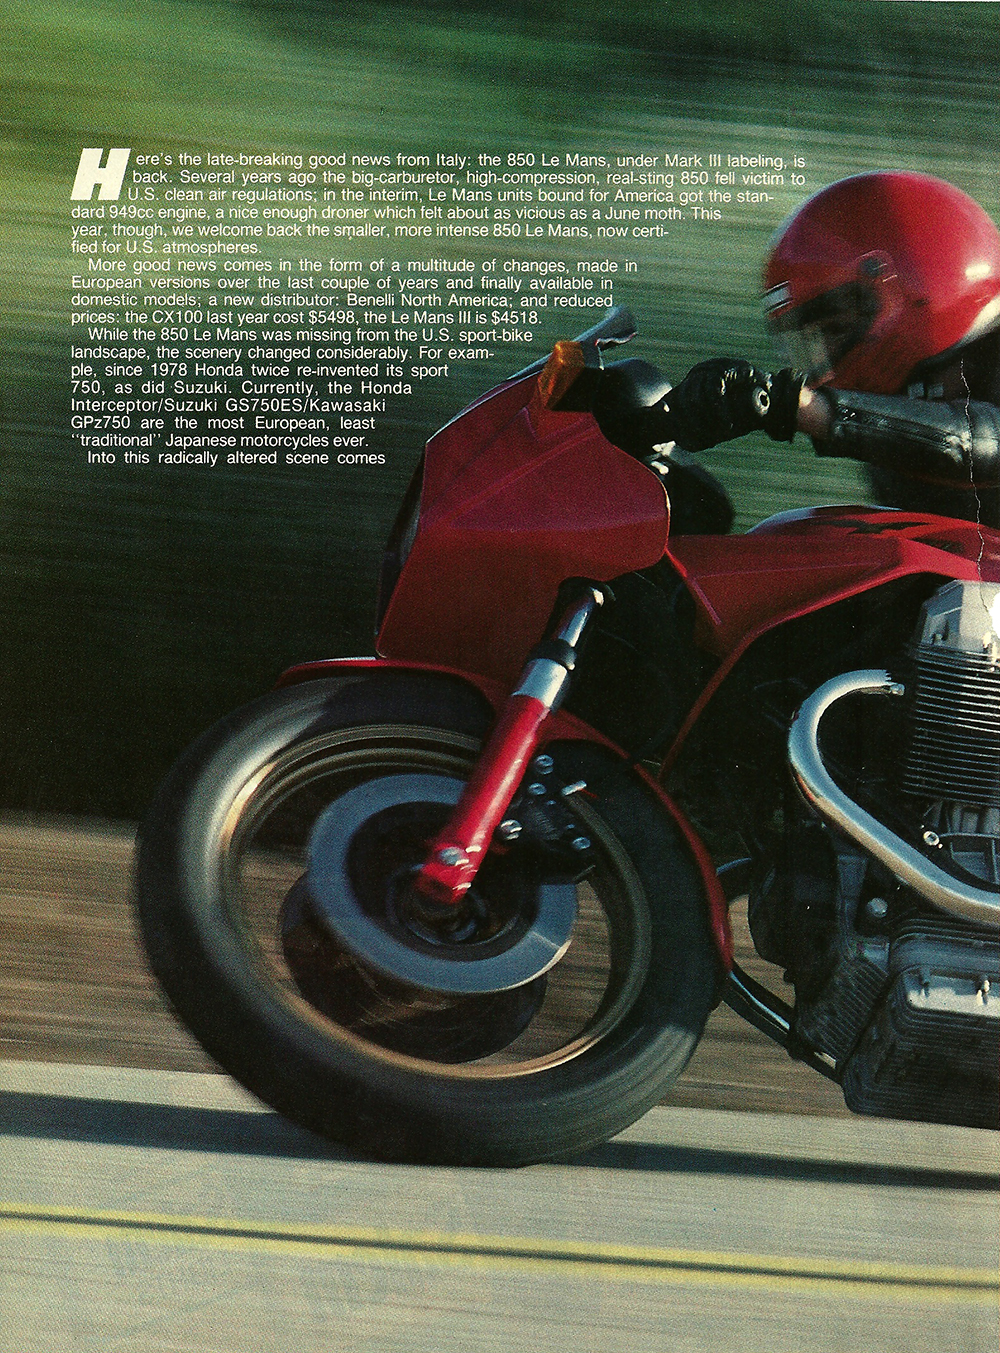 1983 Moto Guzzi 850 Lemans 3 road test 1.jpg